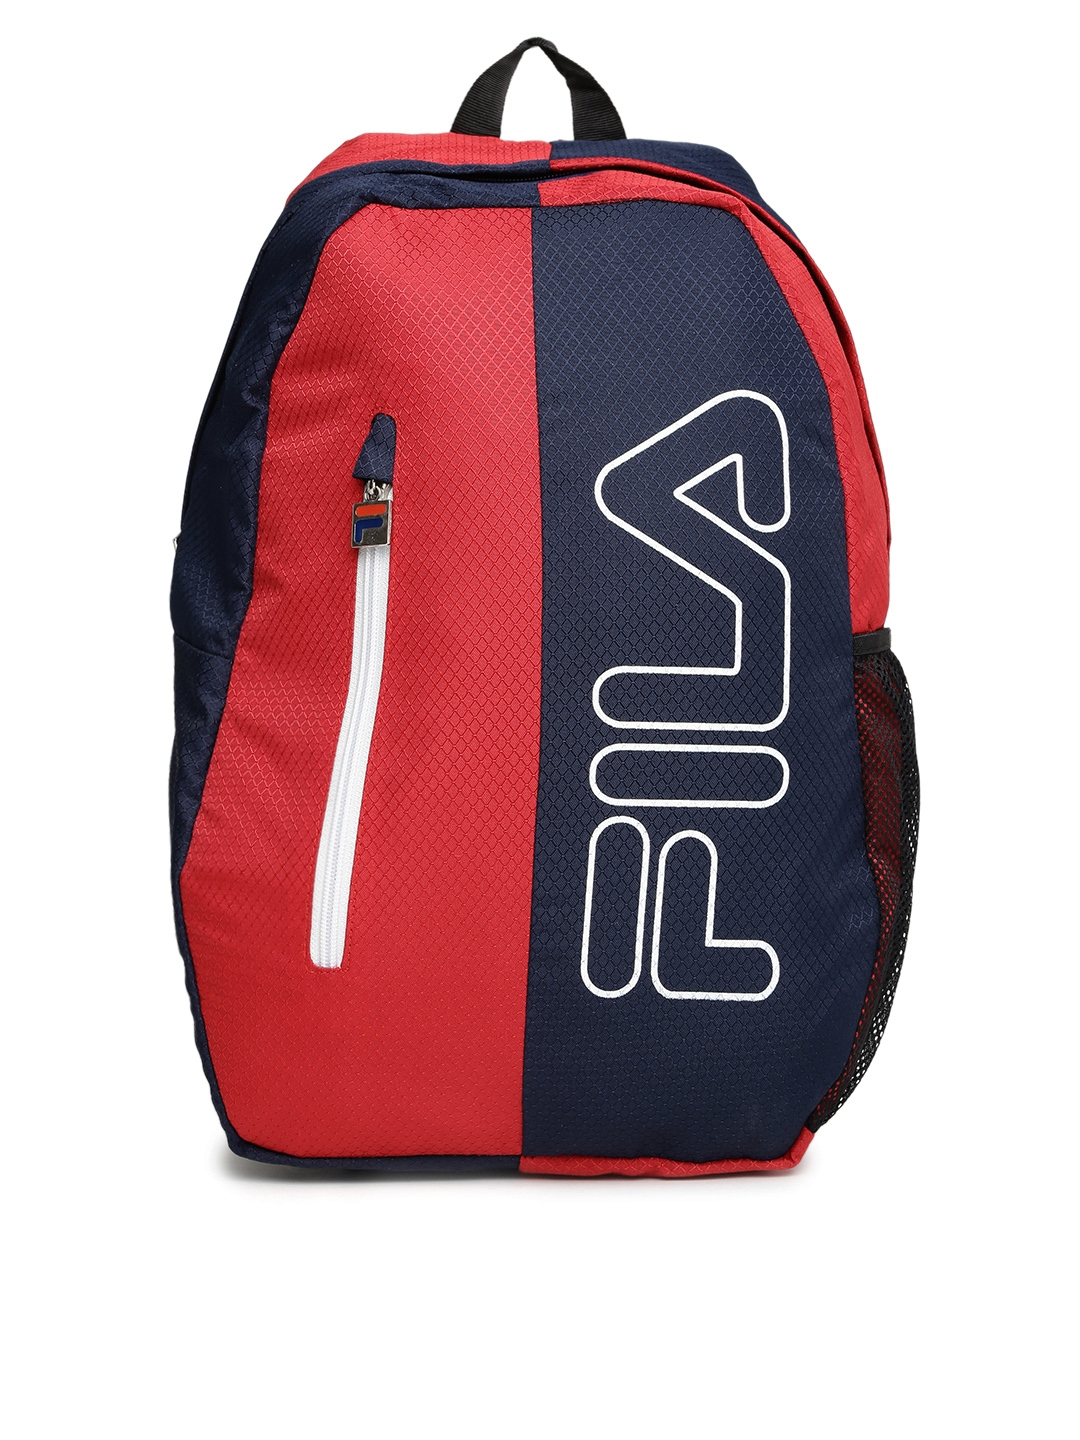 7deda3e808c3 Buy FILA Unisex Navy Blue   Red Mars Laptop Backpack - Backpacks for Unisex  1507104